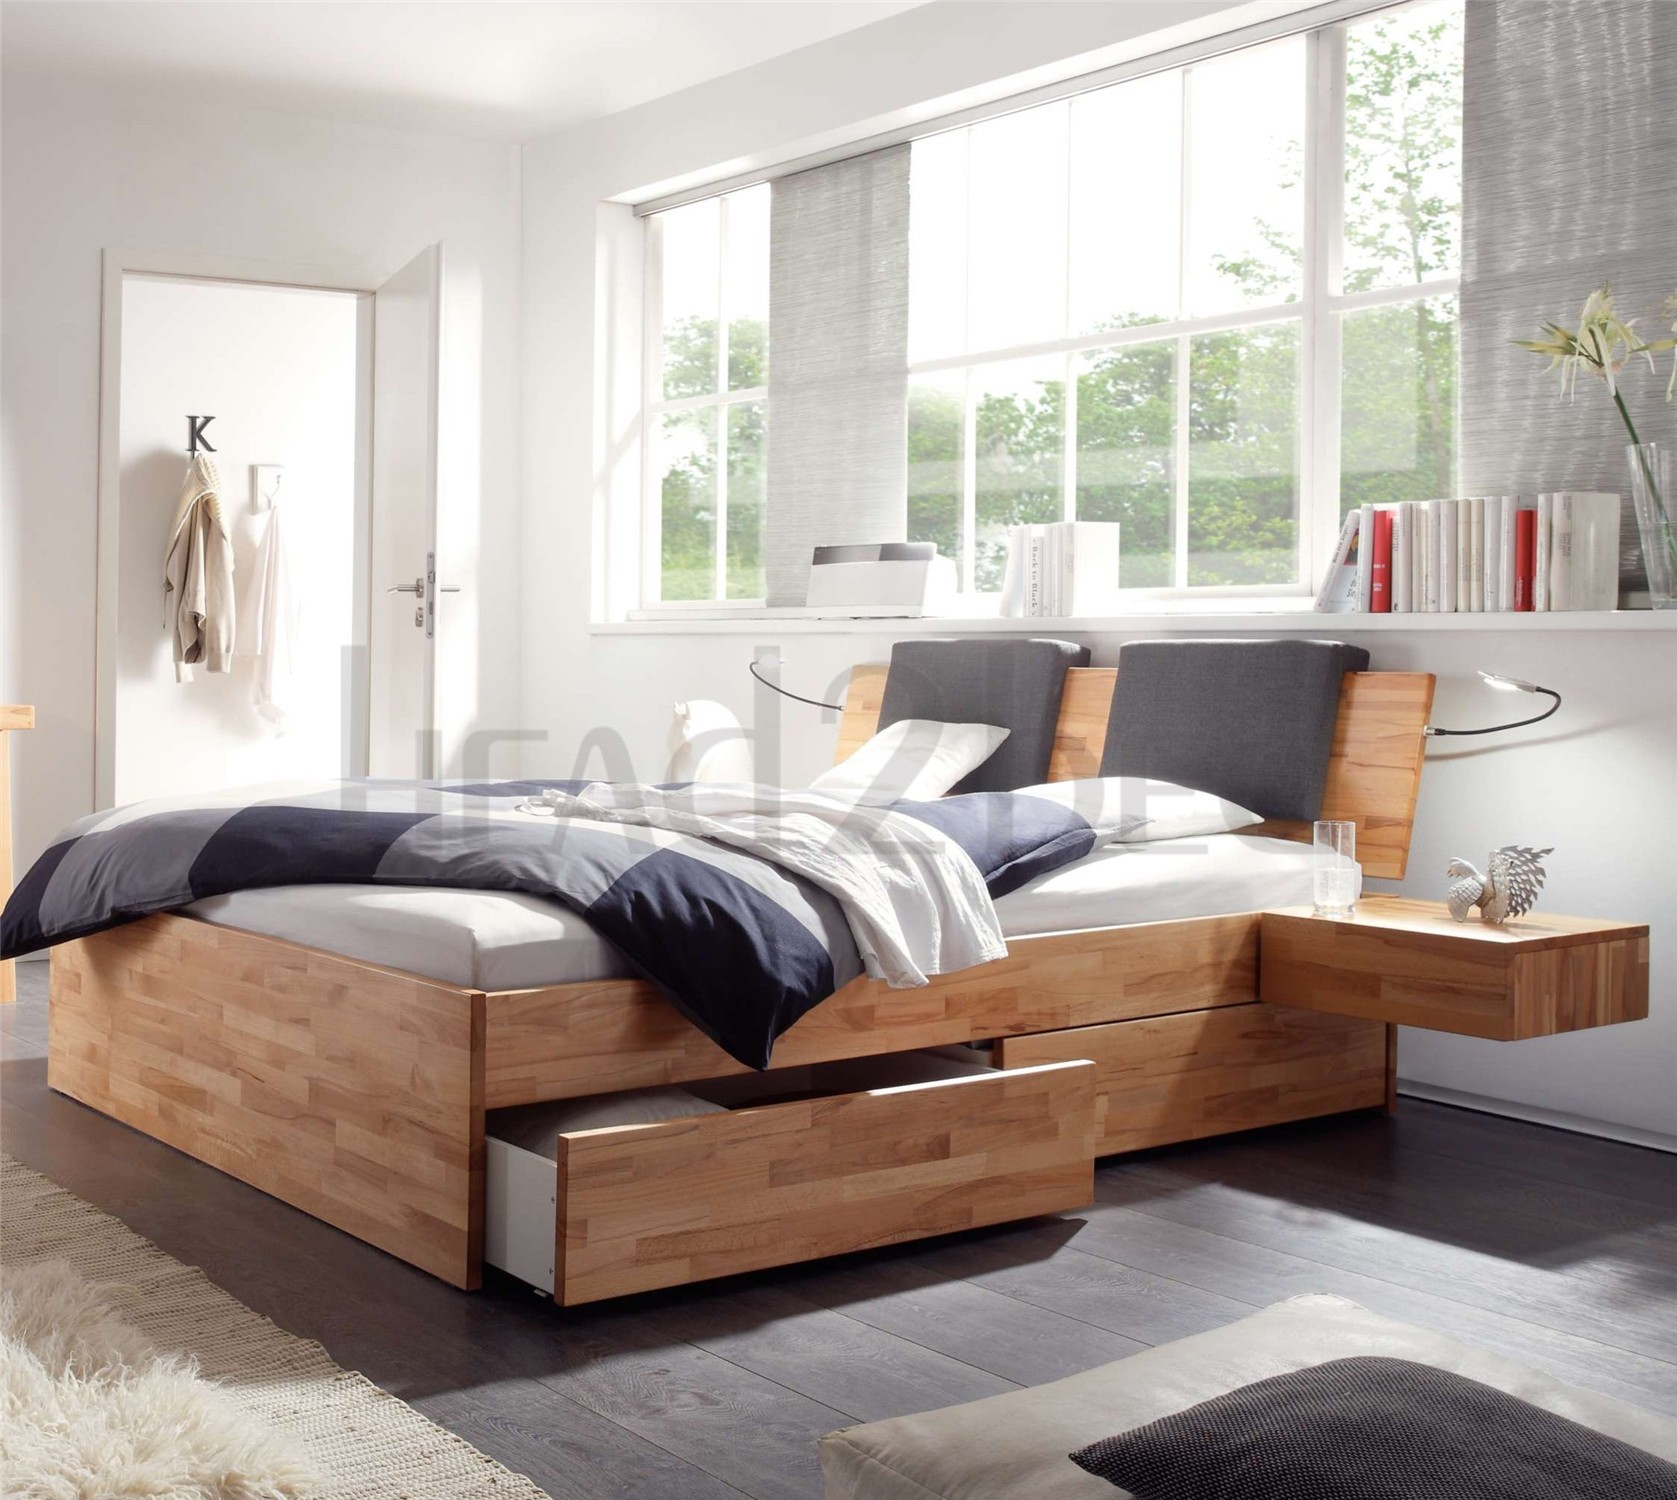 contemporary designer beds hasena spazio varus varo. Black Bedroom Furniture Sets. Home Design Ideas